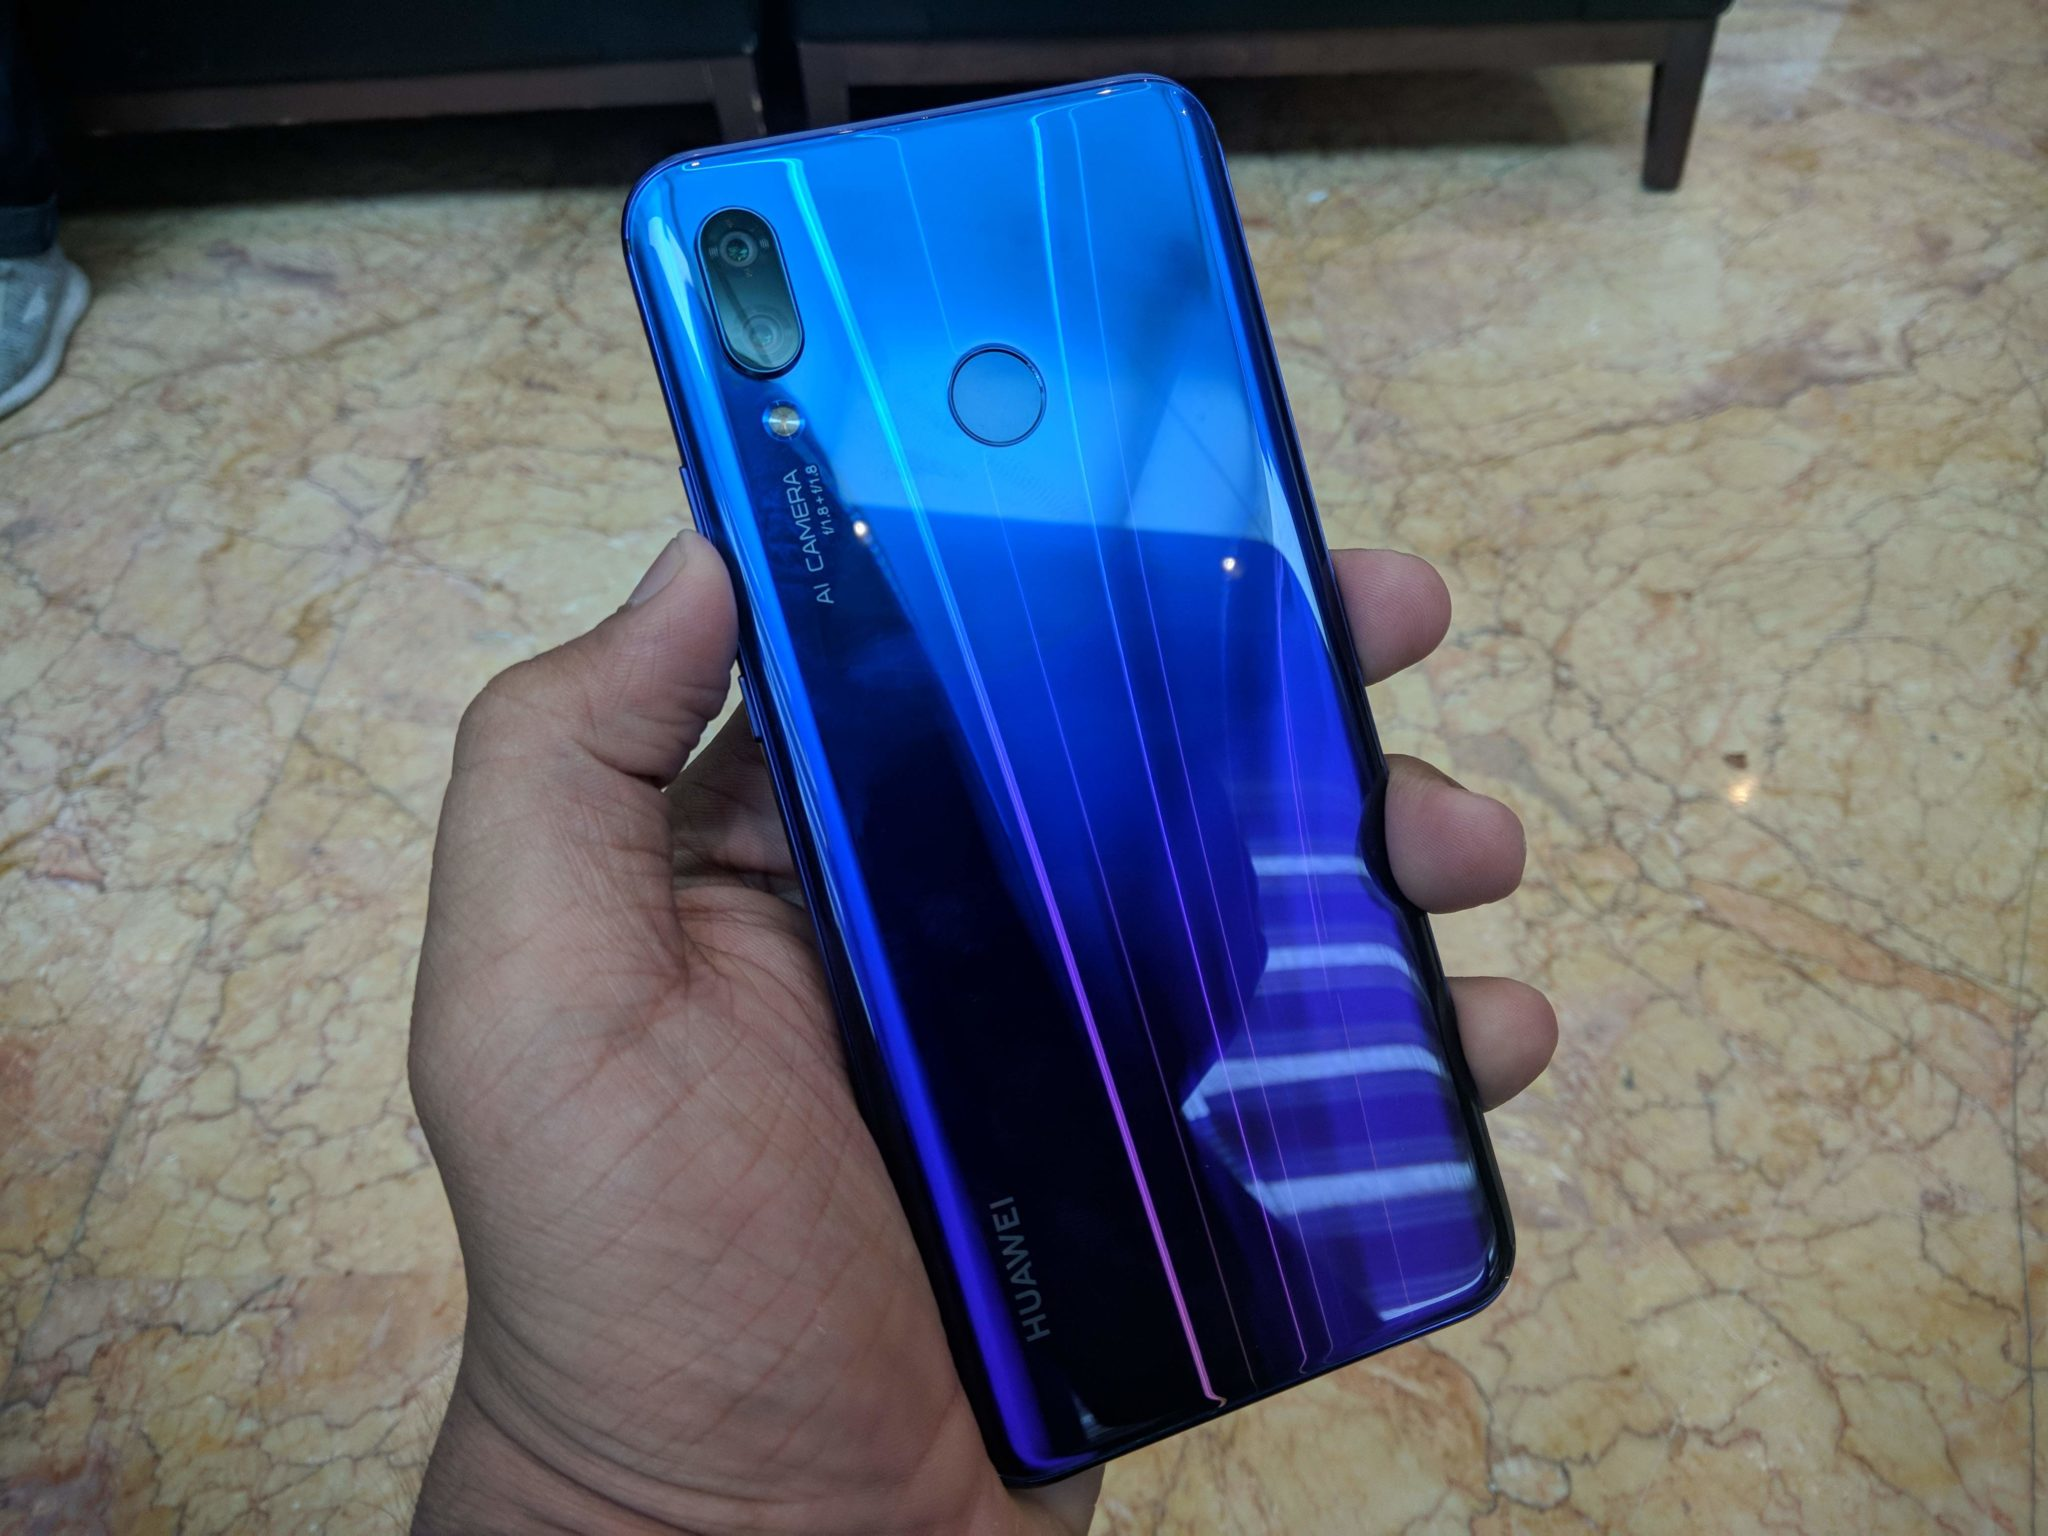 Huawei Nova 3 3i Launched With 4 Ai Based Cameras Techifie Case